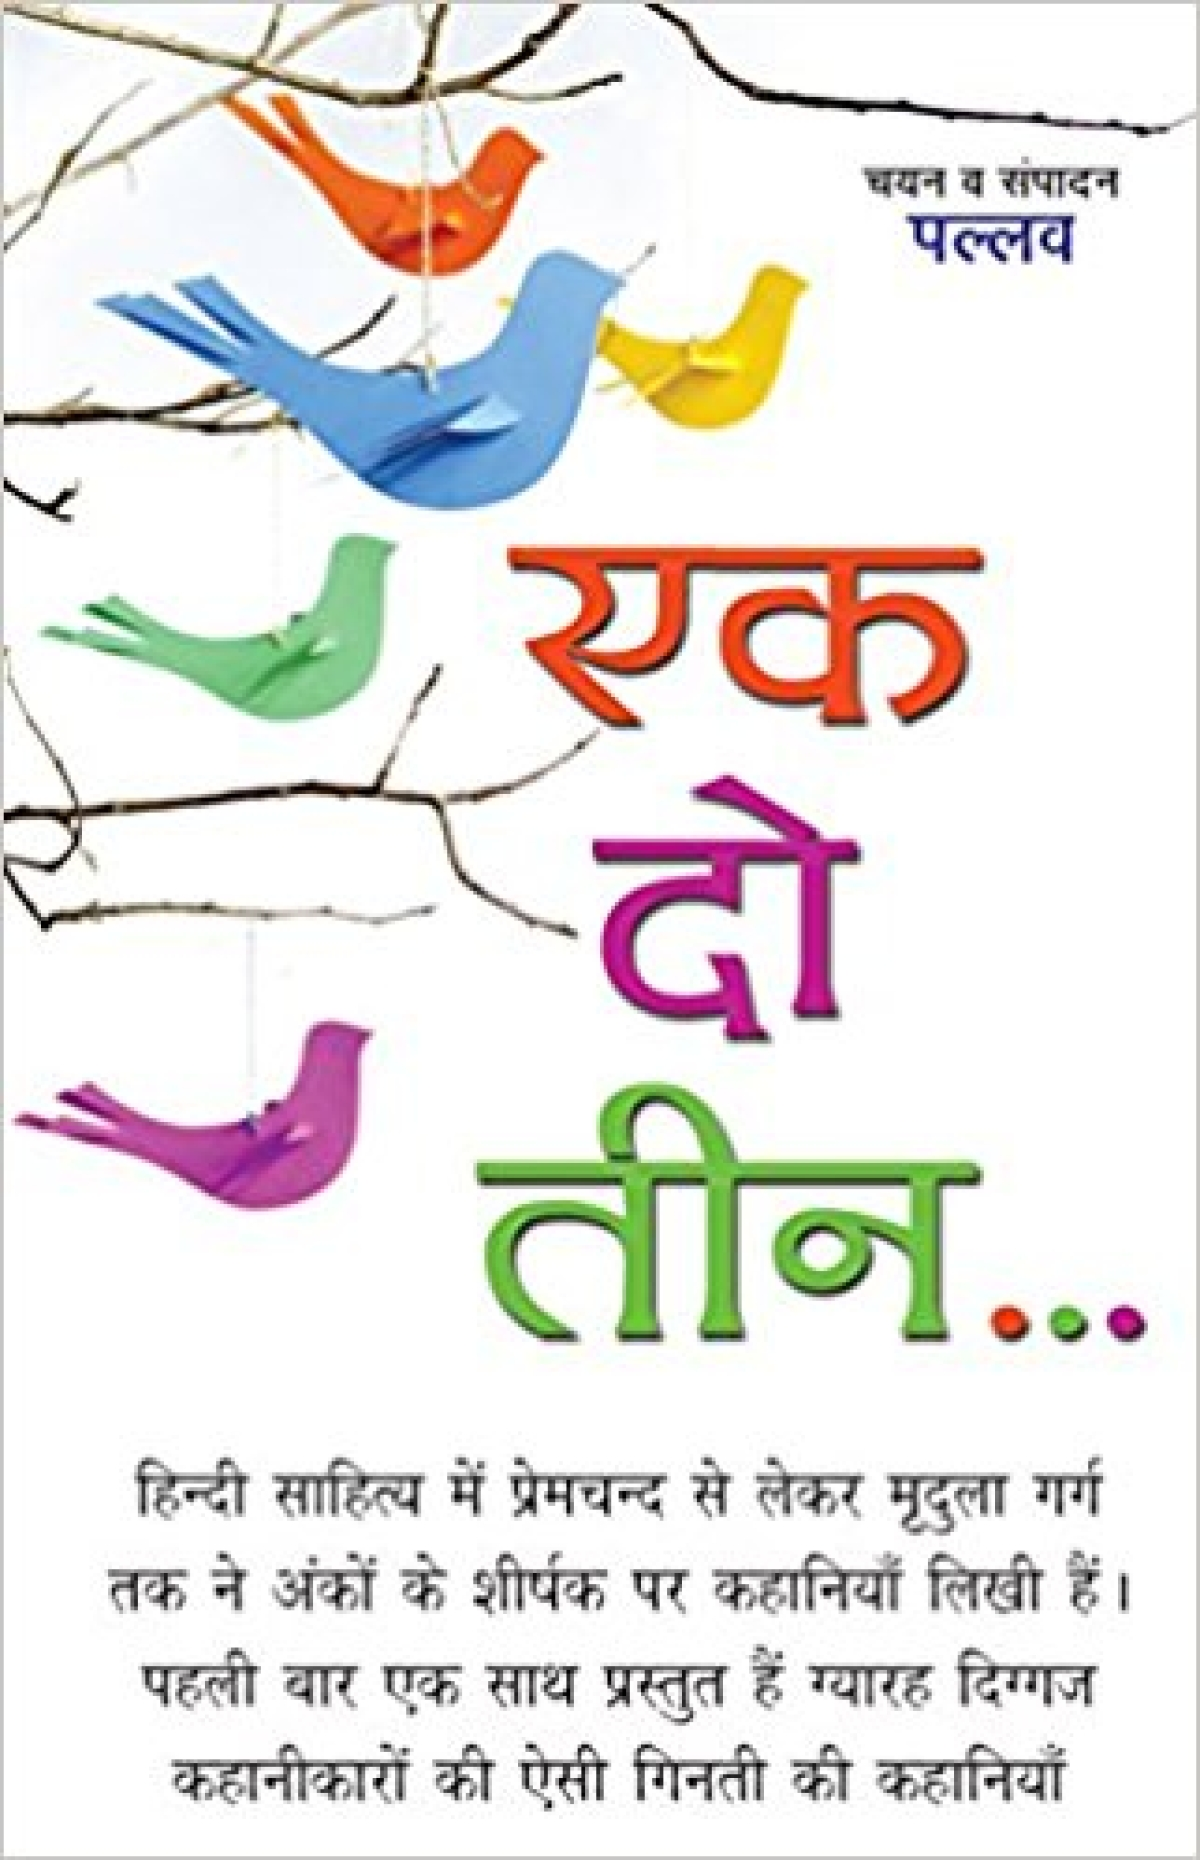 A peek into the world of Hindi short stories